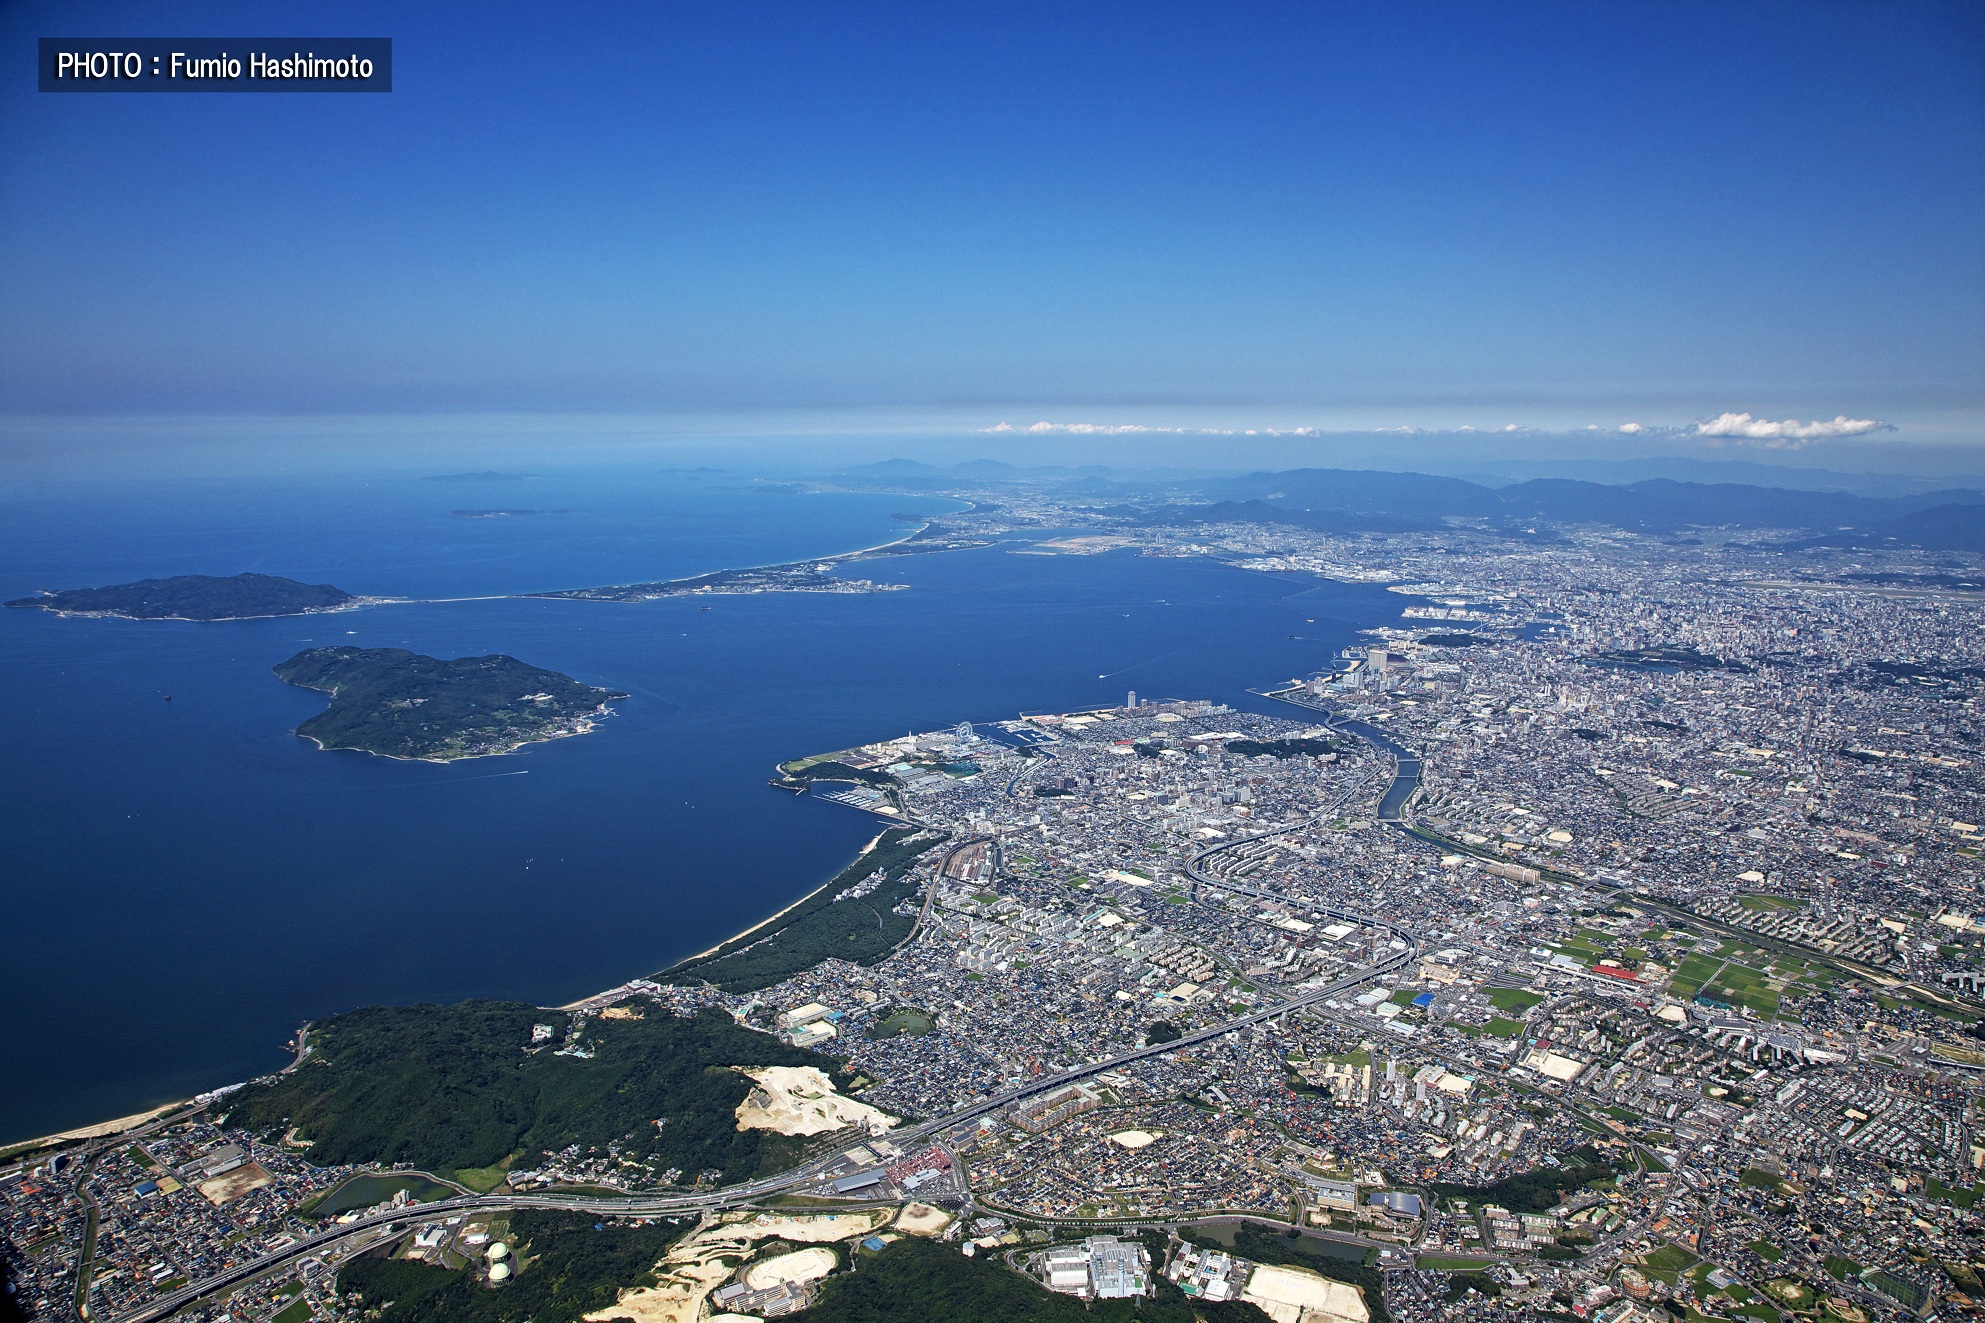 Fukuoka Japan  city images : Fukuoka | Against All Odds Wiki | Fandom powered by Wikia